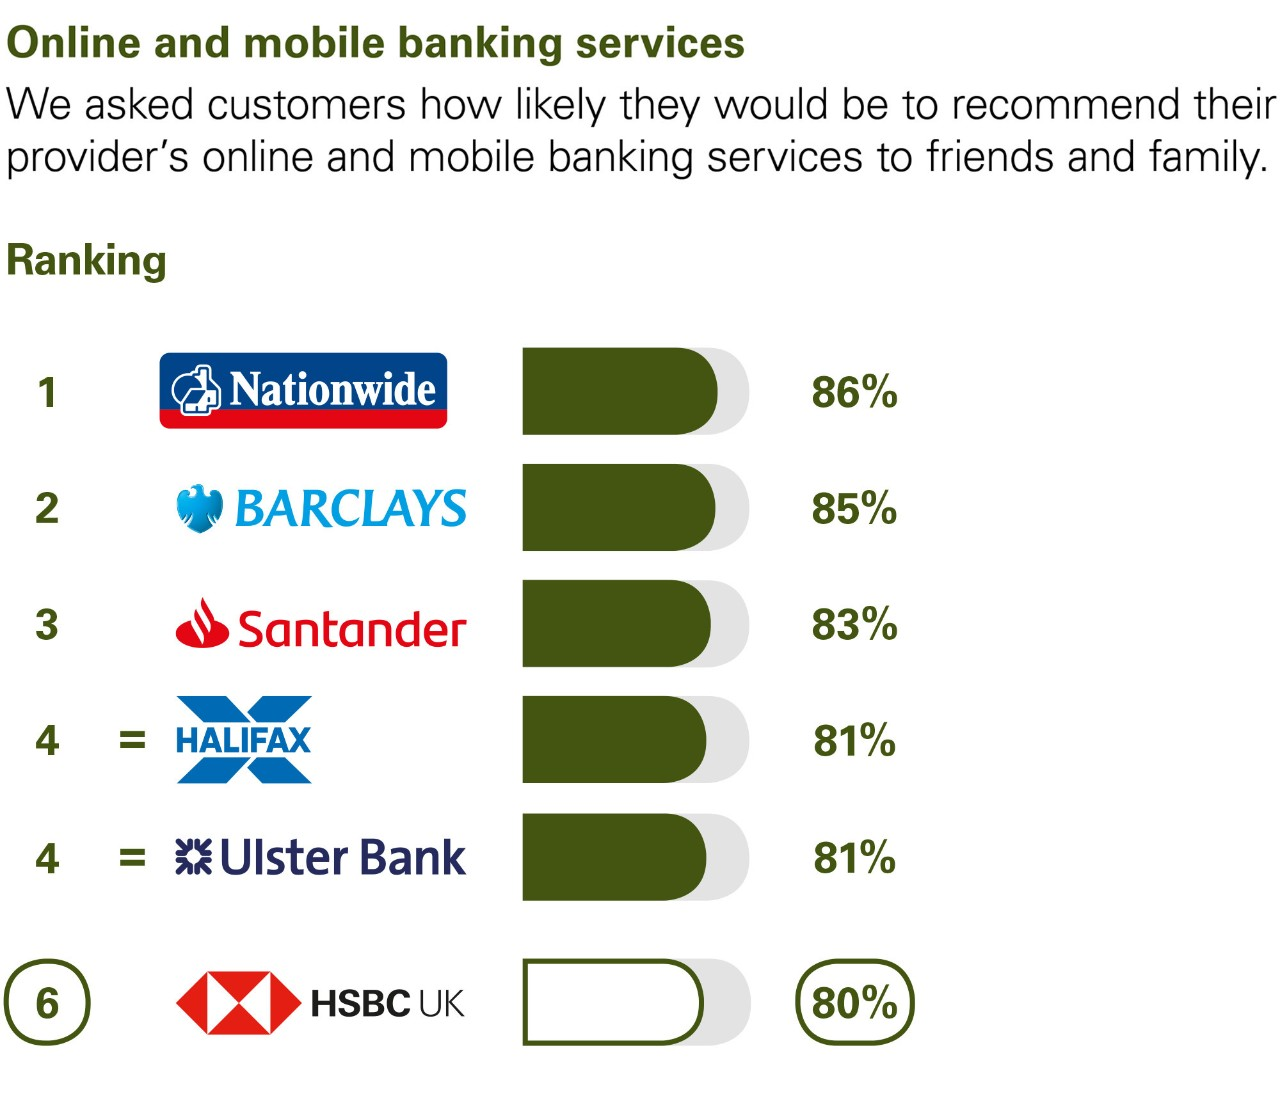 Online and mobile banking services. We asked customers how likely they would be to recommend their provider's online and mobile banking services to friends and family. Ranking:  1 Nationwide 86%. 2 Barclays 85%. 3 Santander 83%. 4 equal Halifax and Ulster Bank 81%.  6 HSBC UK 80%.